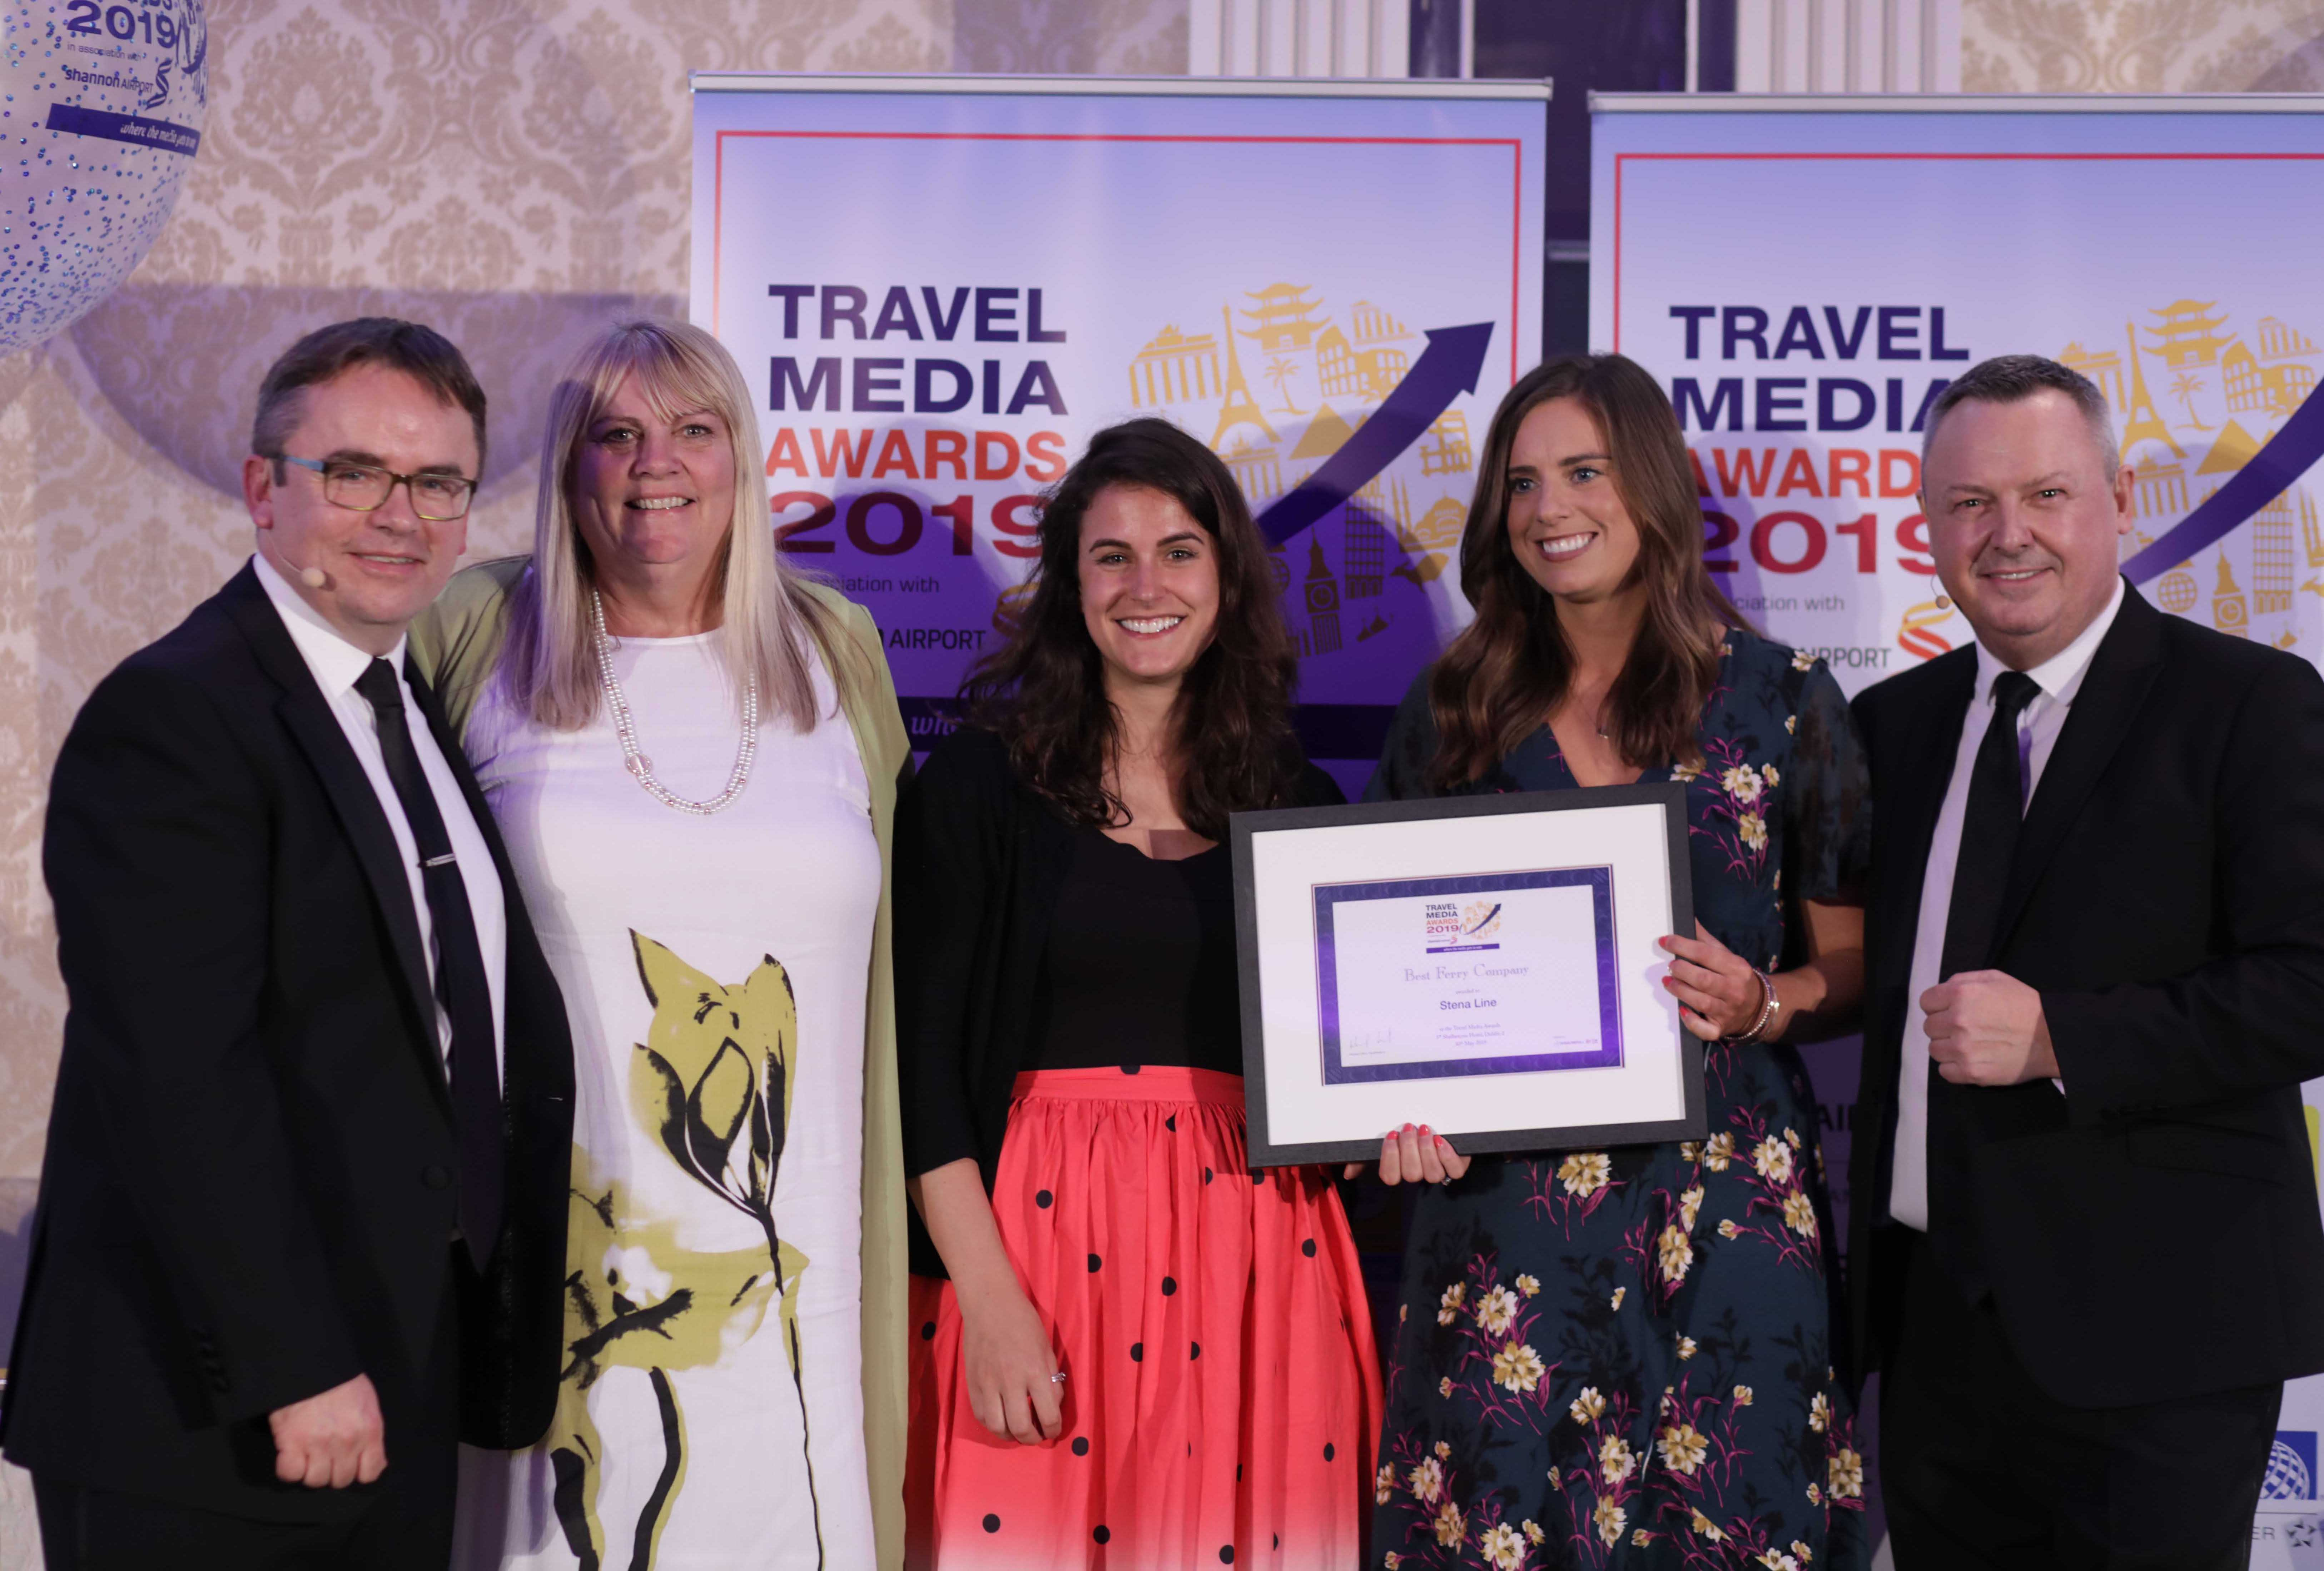 Stena Line - Travel Media Award 2019 #1